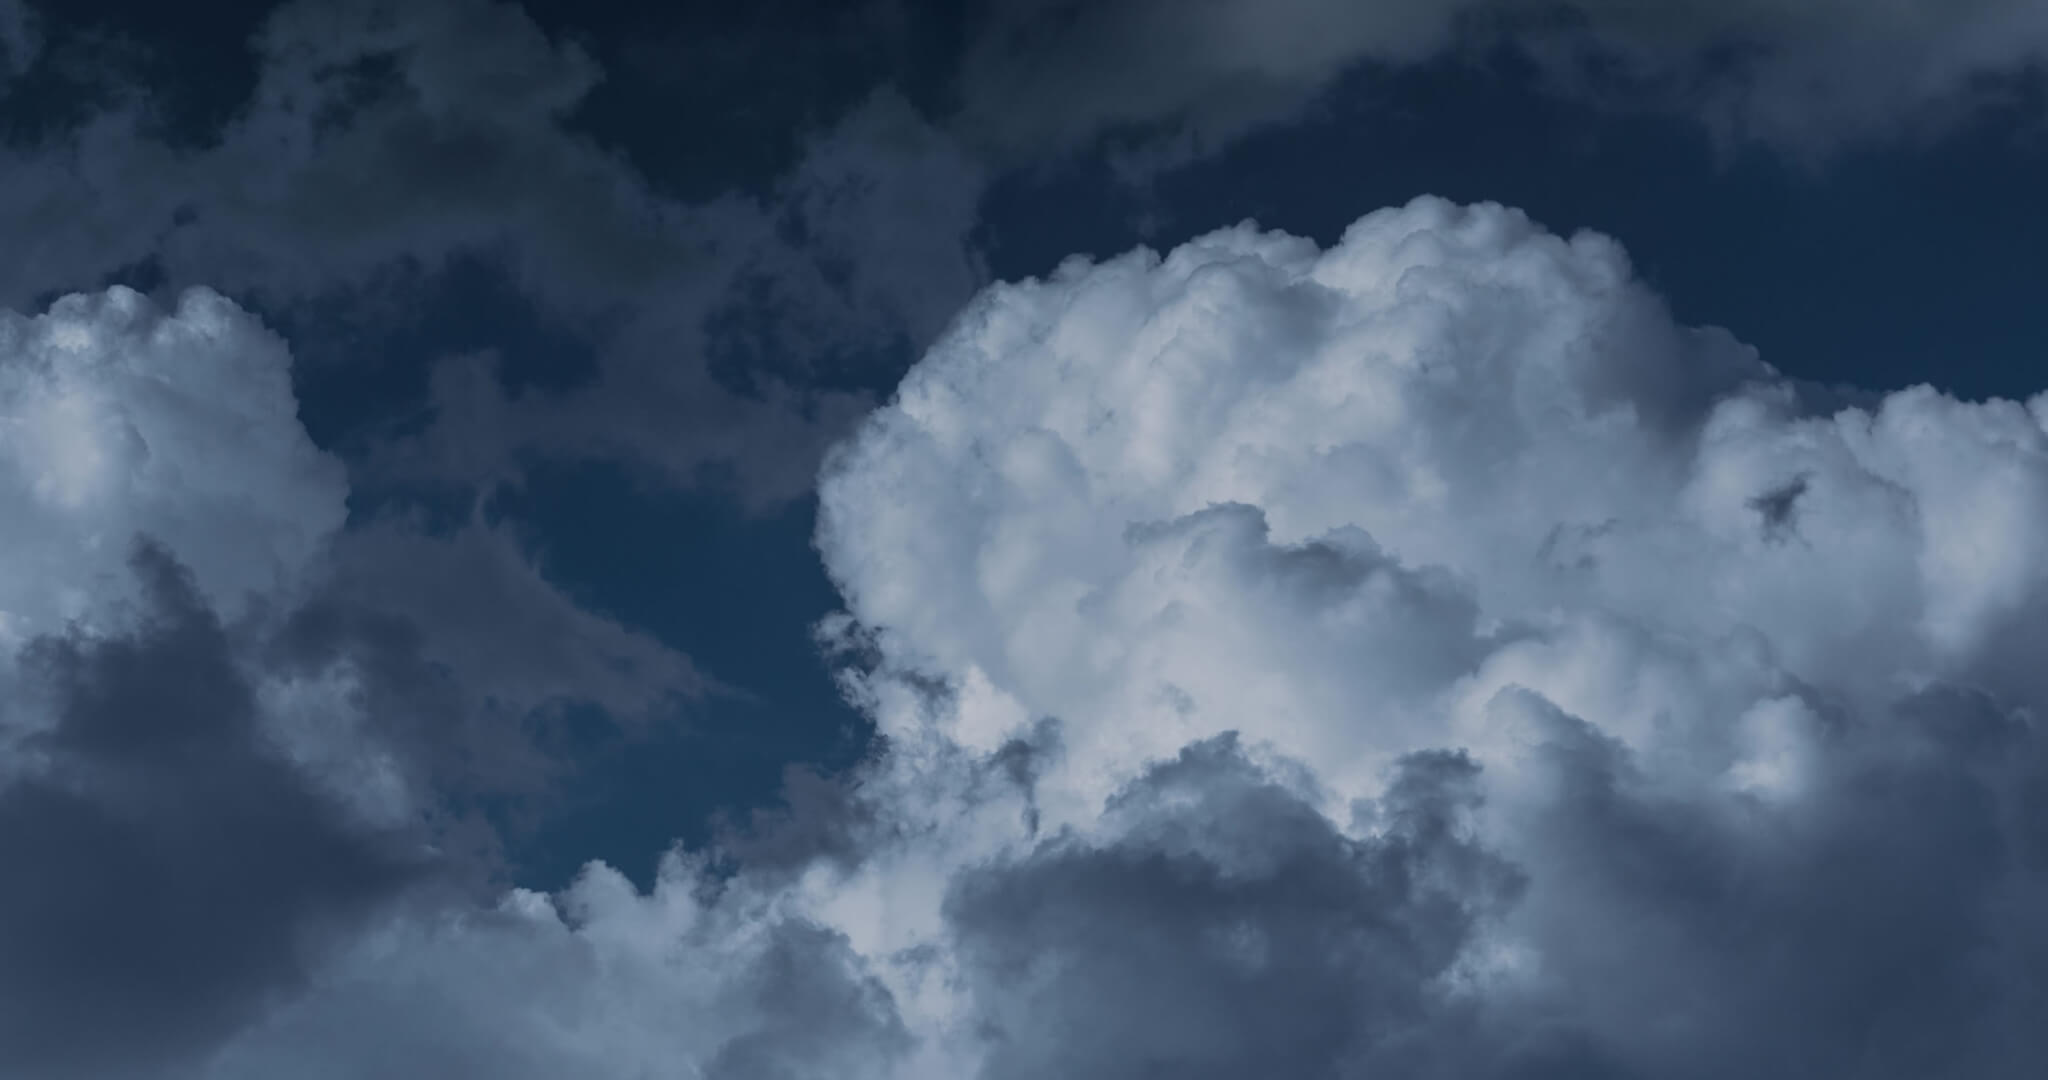 An image of clouds in a dark blue sky